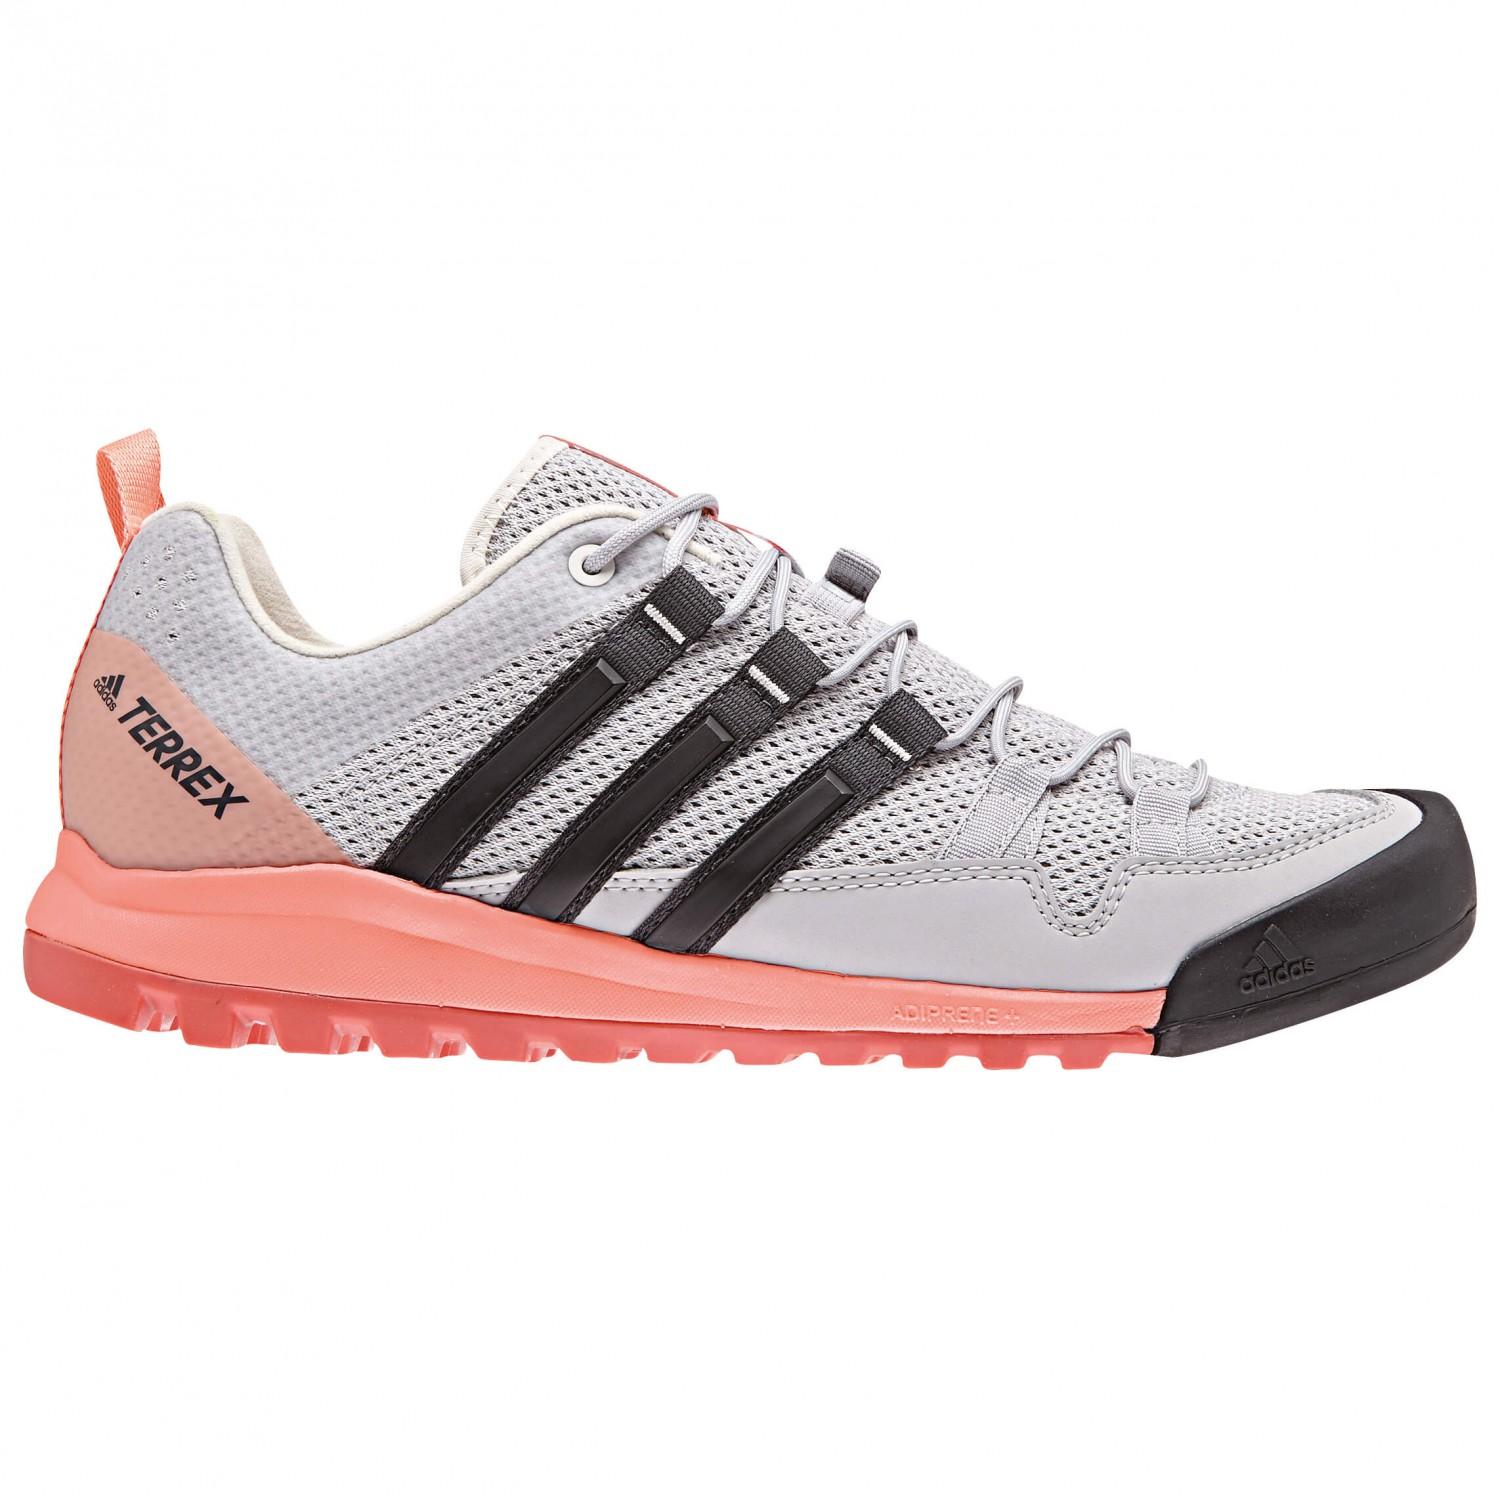 562ccbc9d108d adidas - Women s Terrex Solo - Approach shoes